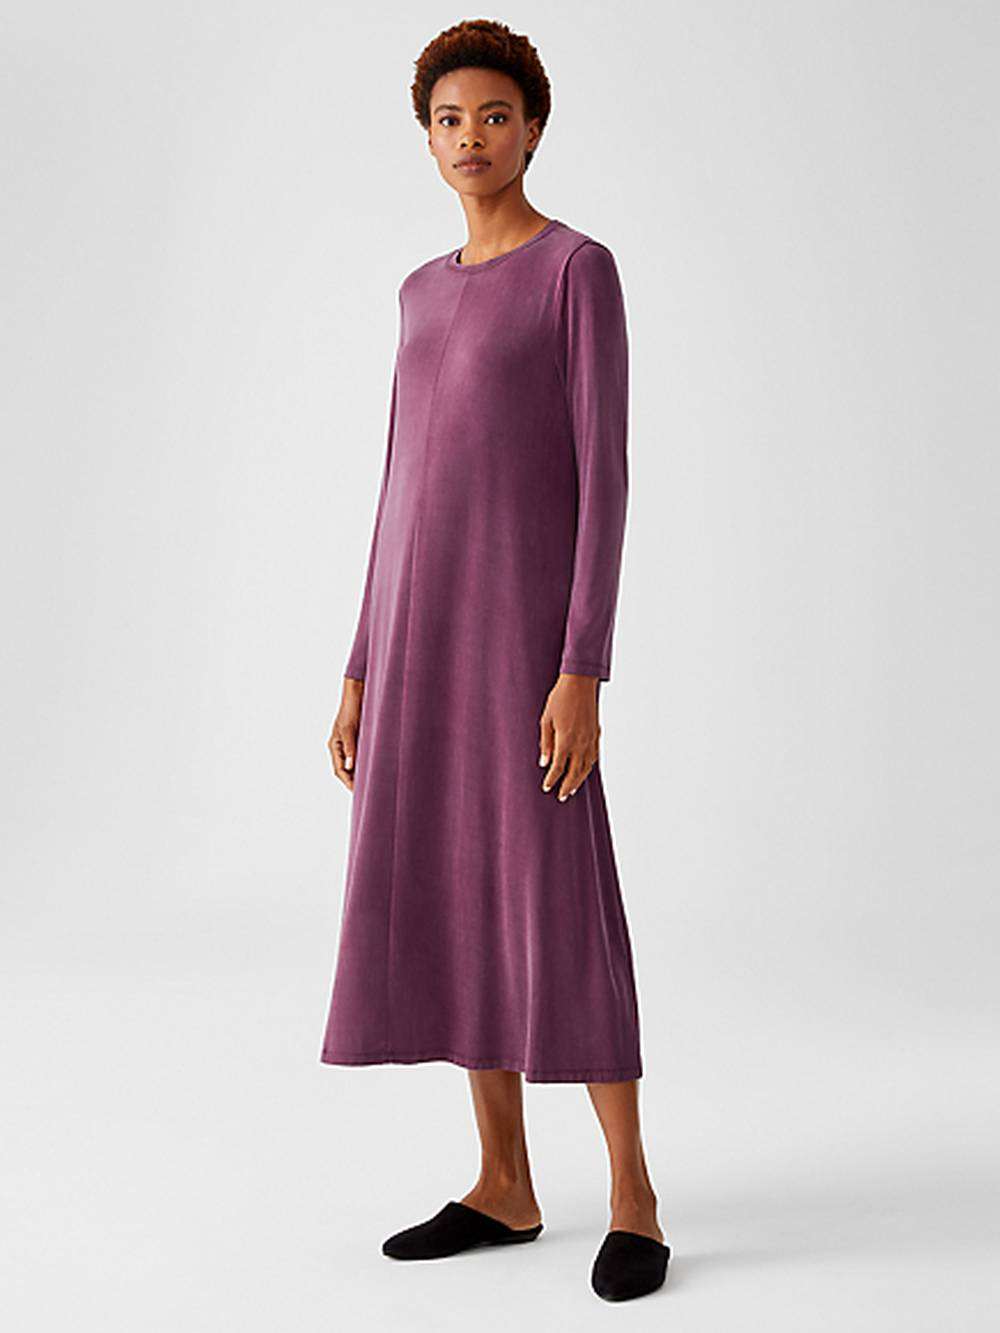 eileen fisher sustainable maternity clothing